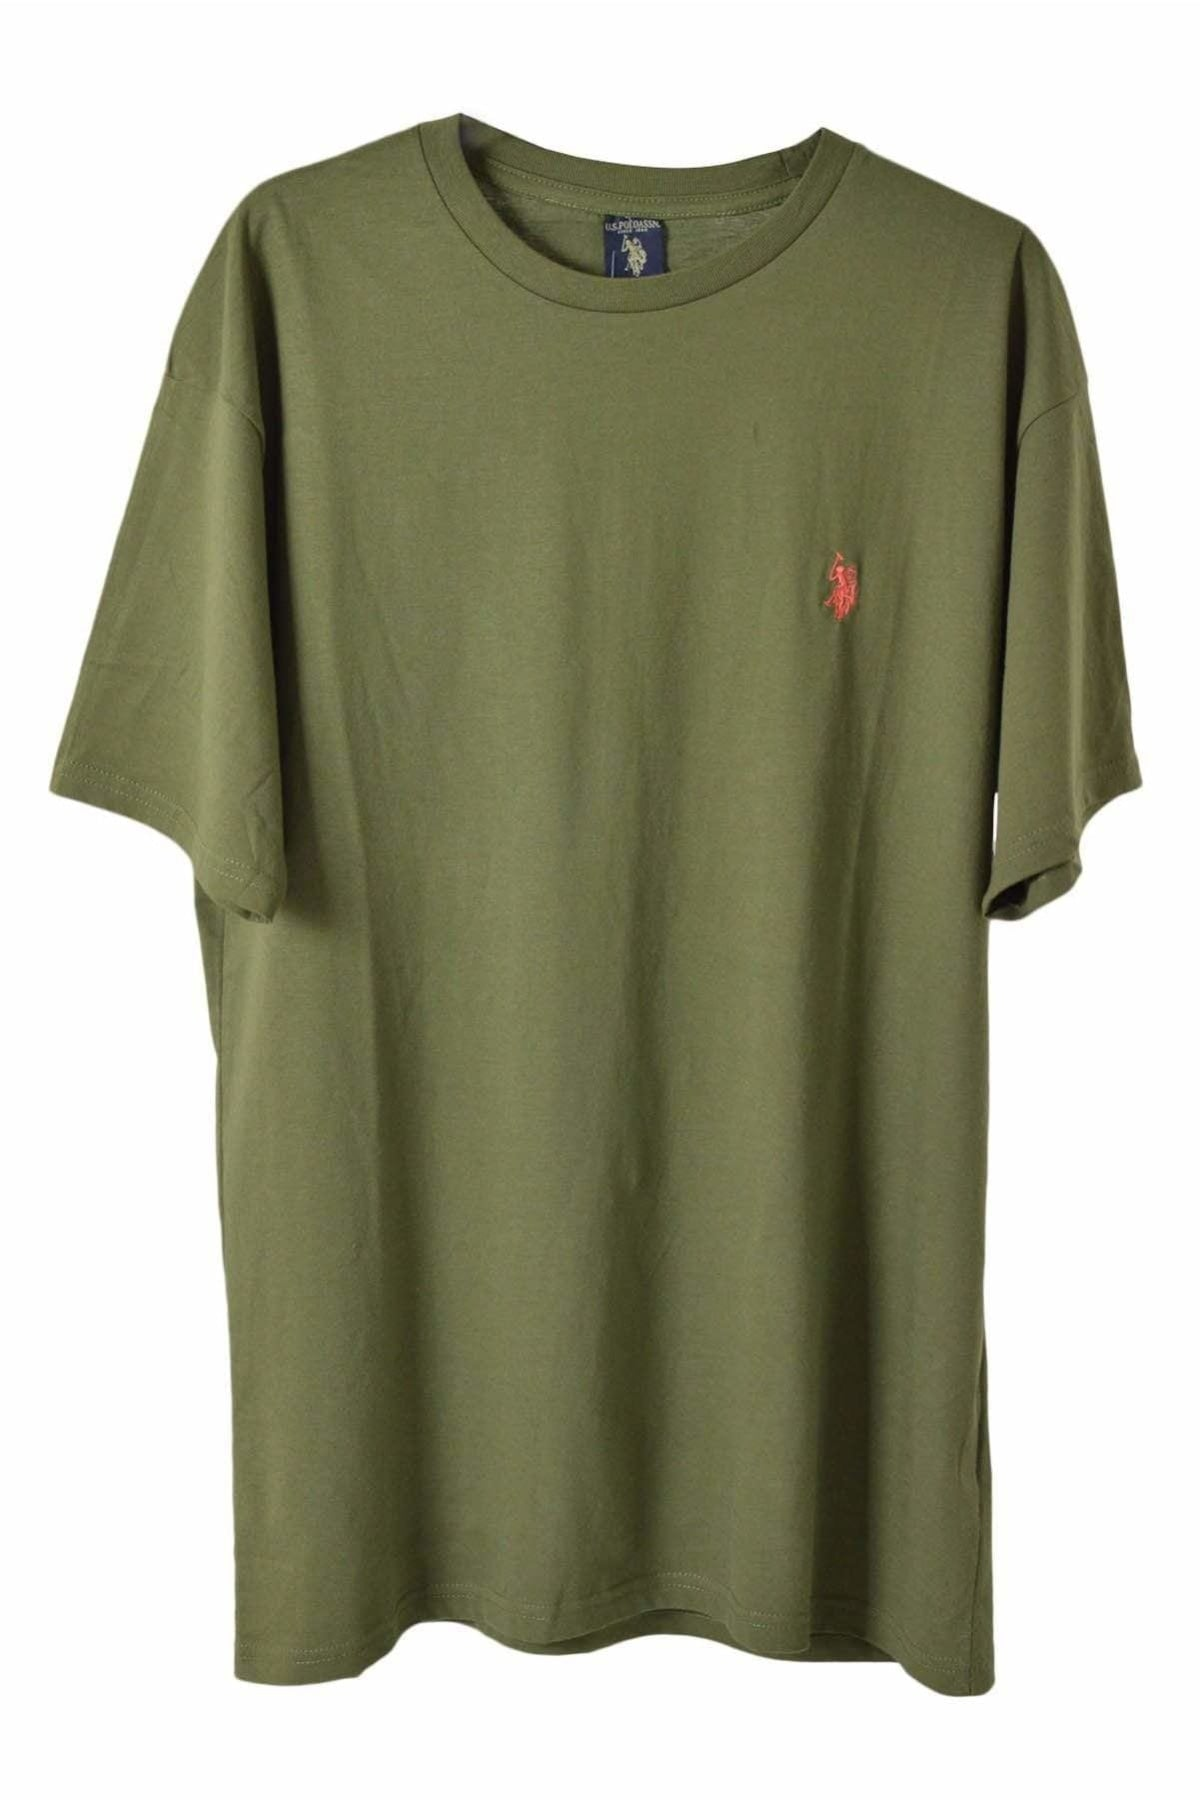 US Polo Assn. Cotton Crew Neck T Shirt | Small / Khaki Secret Label